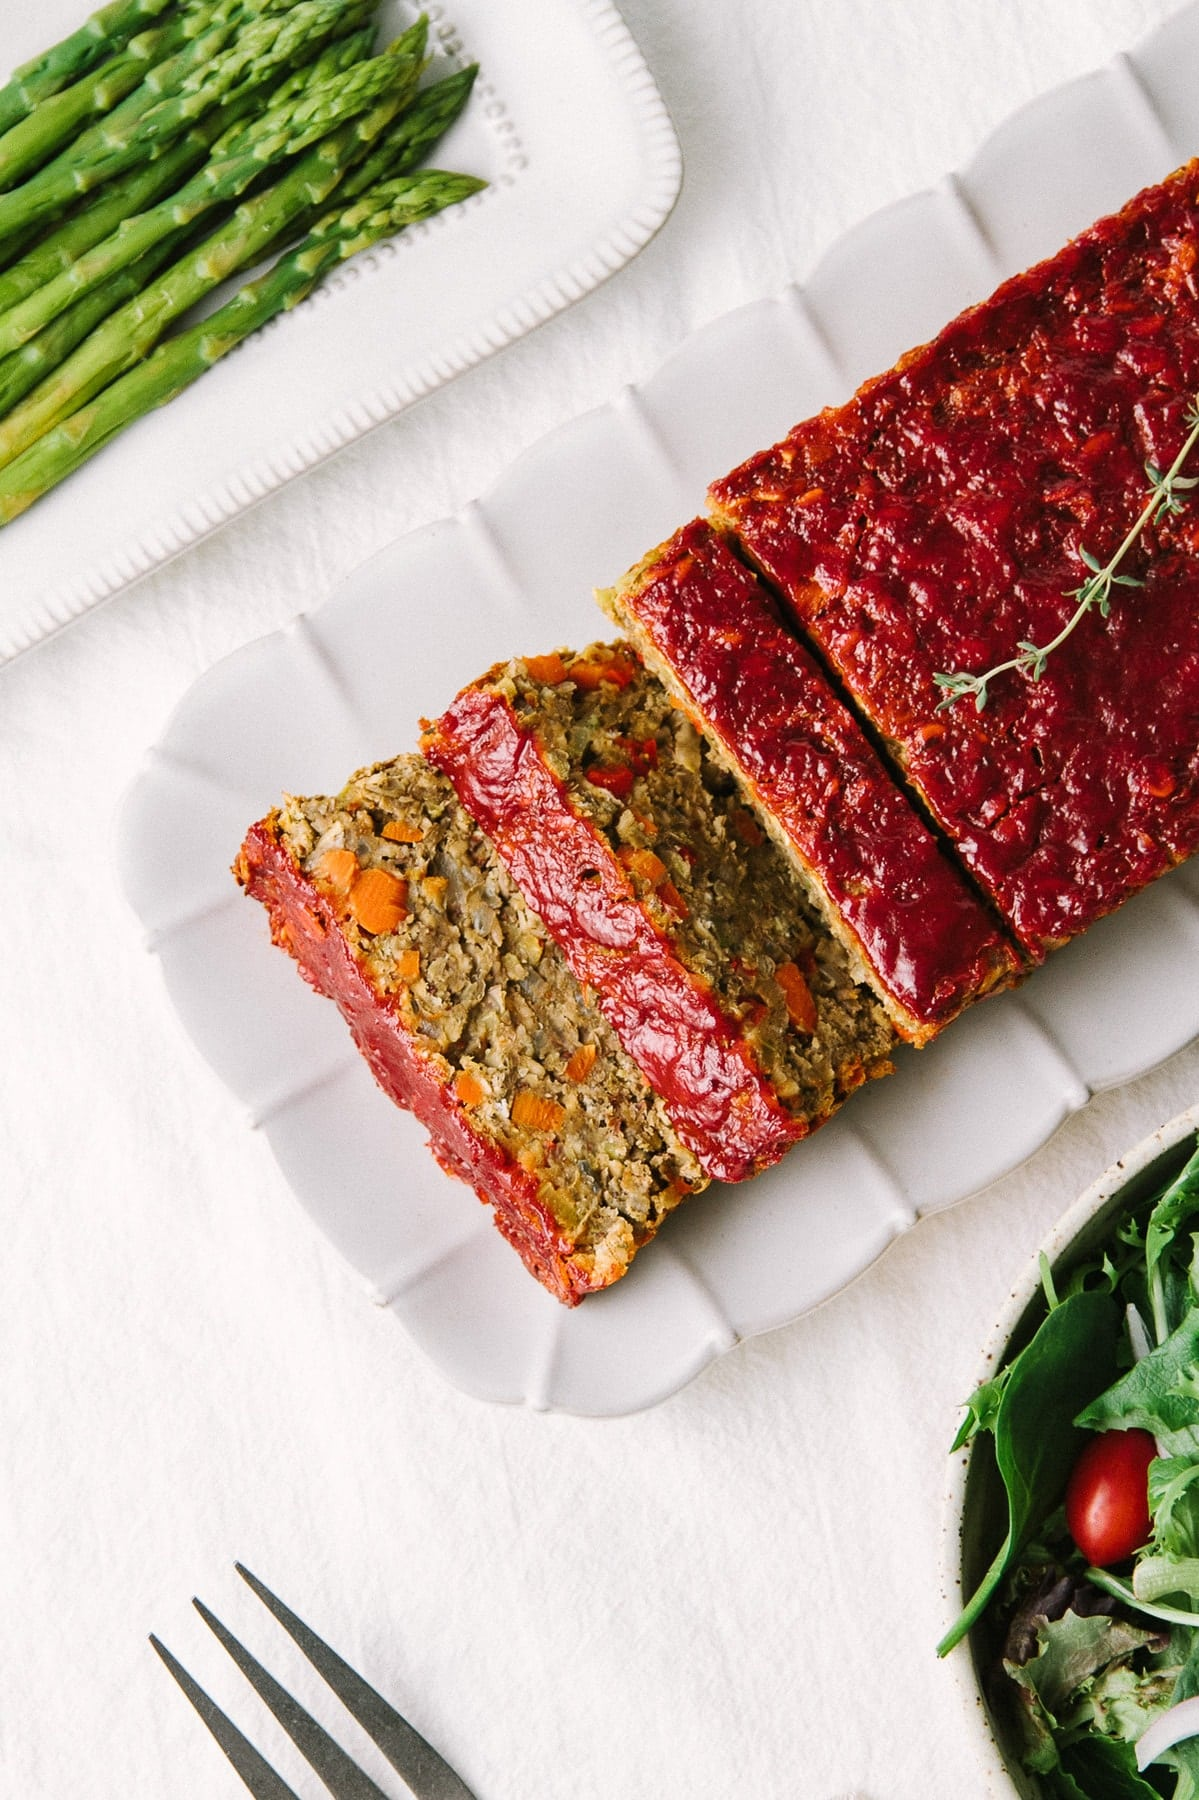 top down view of vegetable lentil loaf cut into slices on a serving platter surrounded by side dishes.